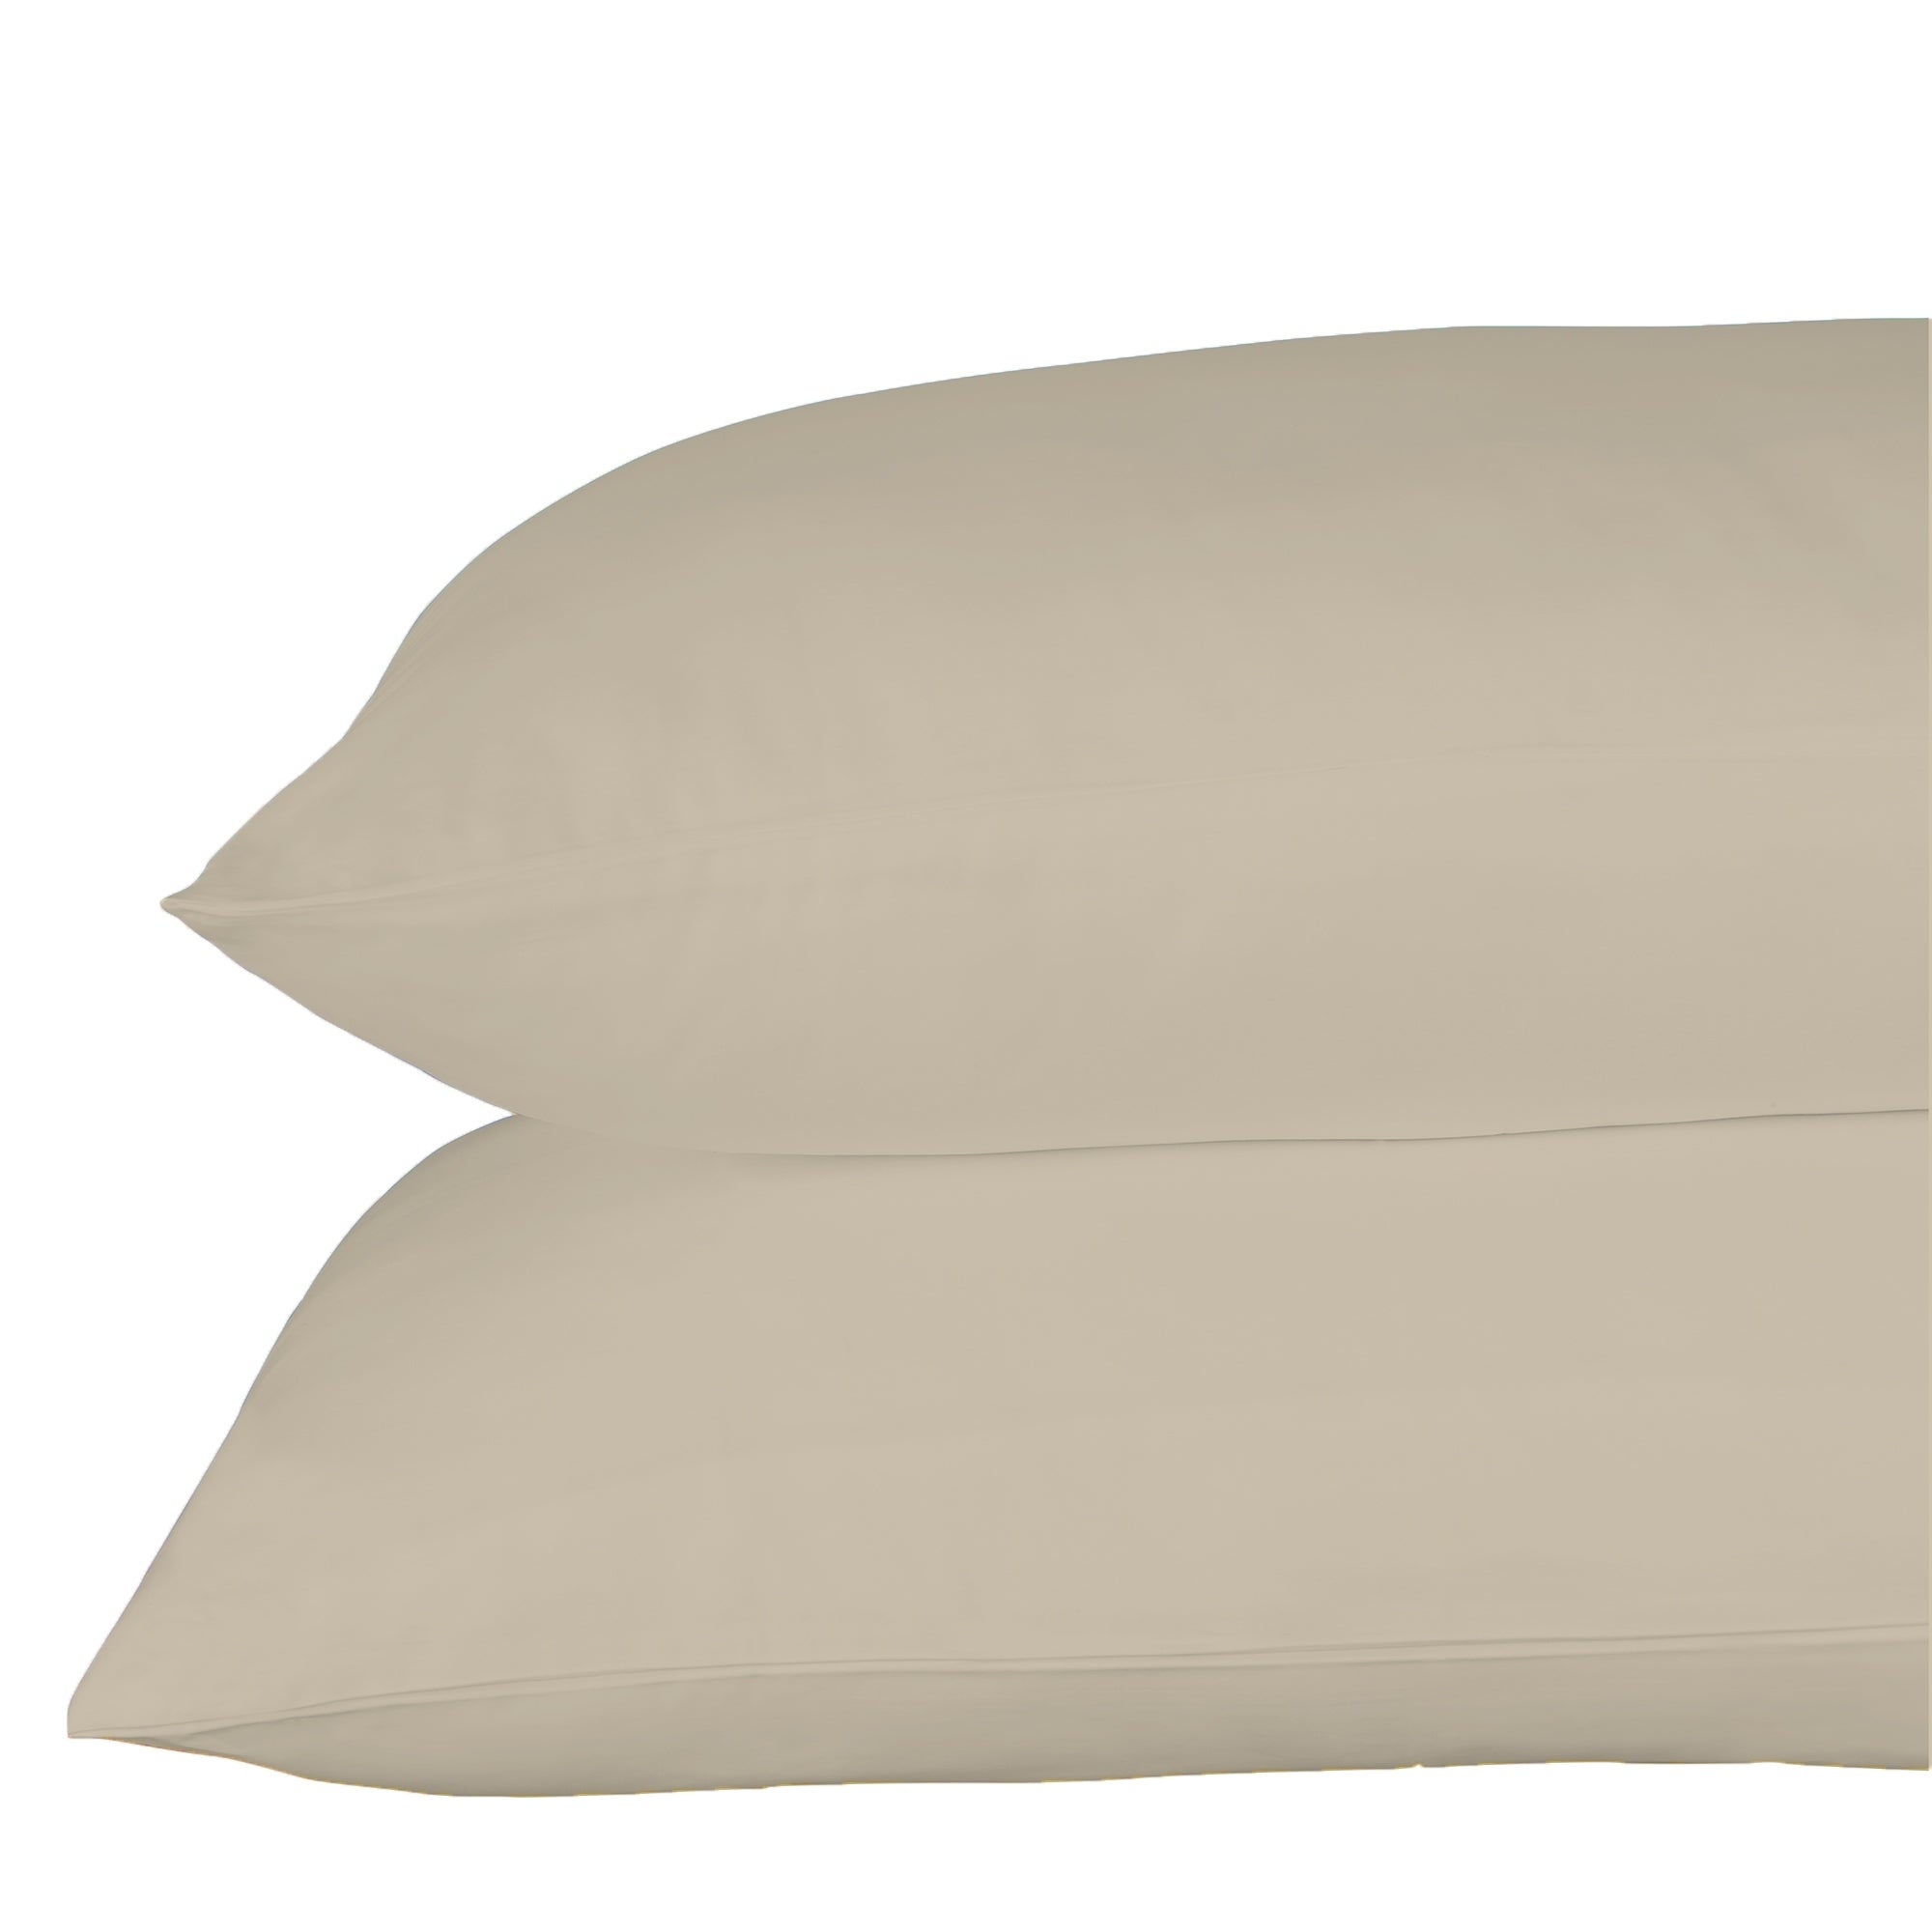 1 New pillow case cover king 20x36 white percale hotel linen premium T250 series